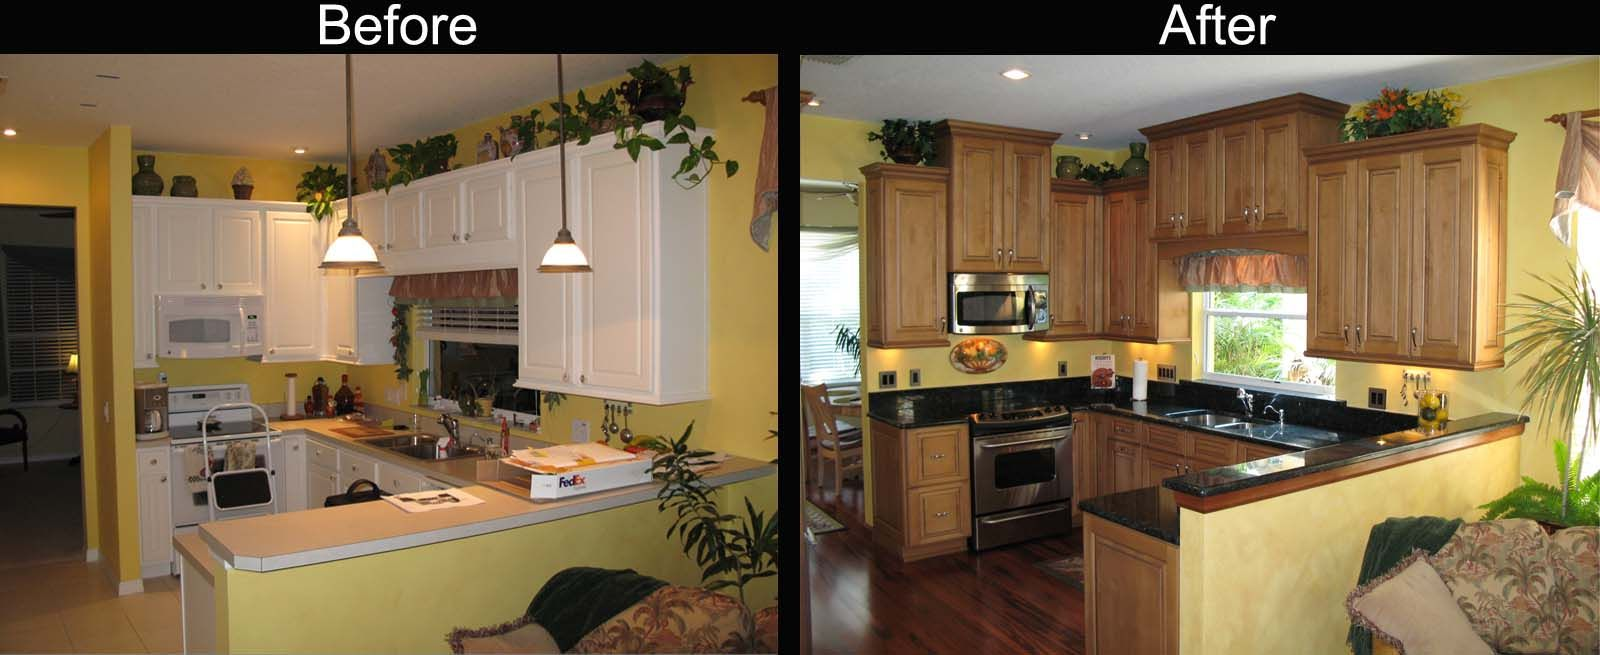 Renovation Ideas Before And After Magnificent Painted Cabinets Before And After Ideas For Your Kitchen Design Ideas